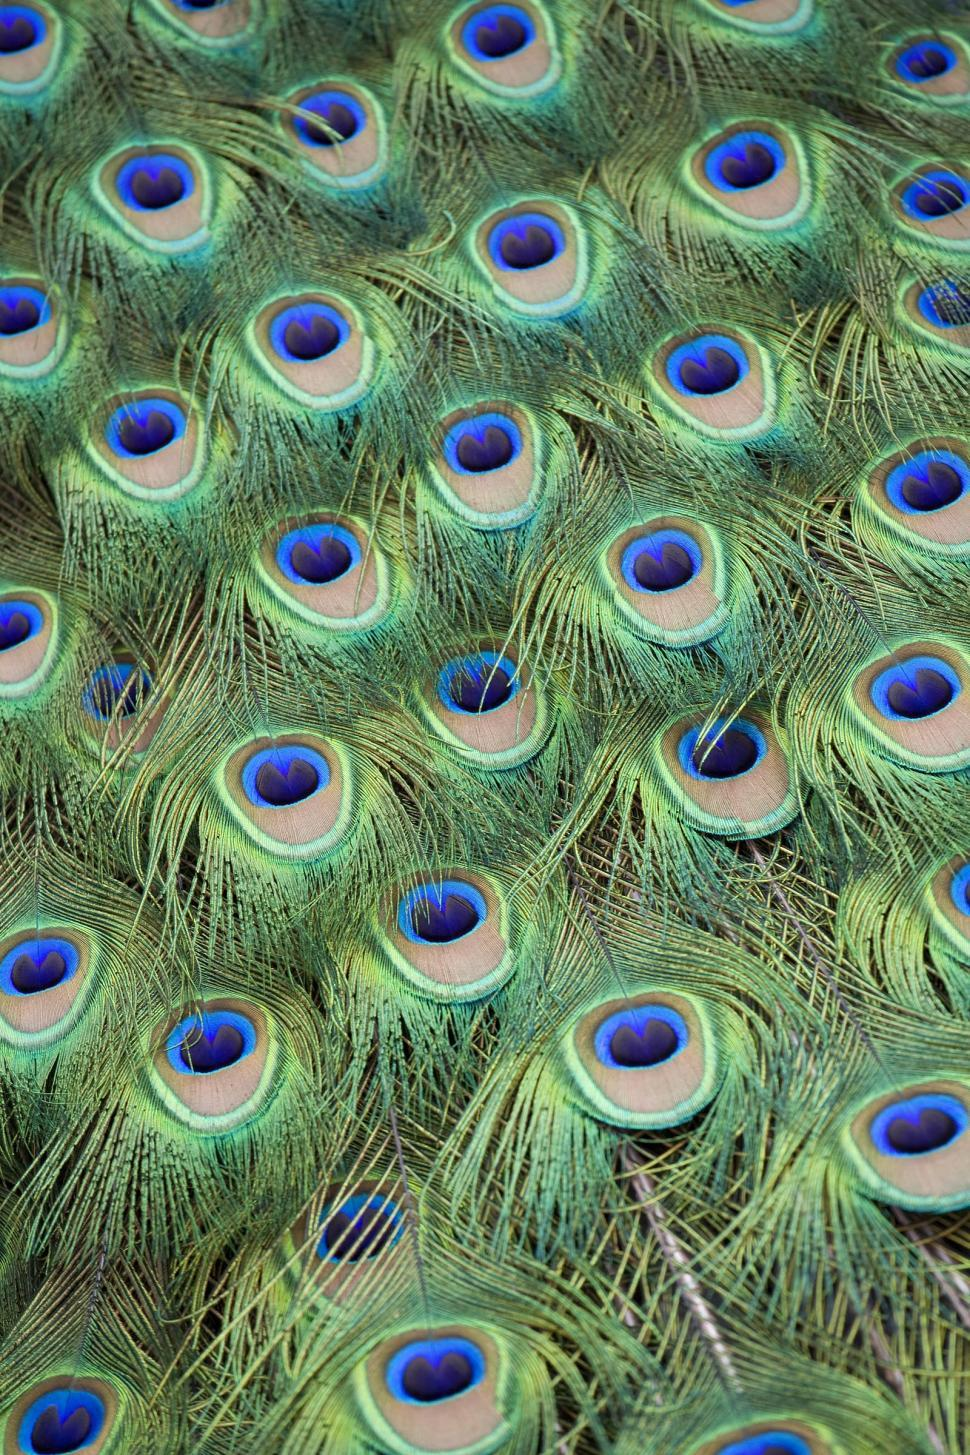 Download Free Stock HD Photo of Peacock Tail Feathers Online